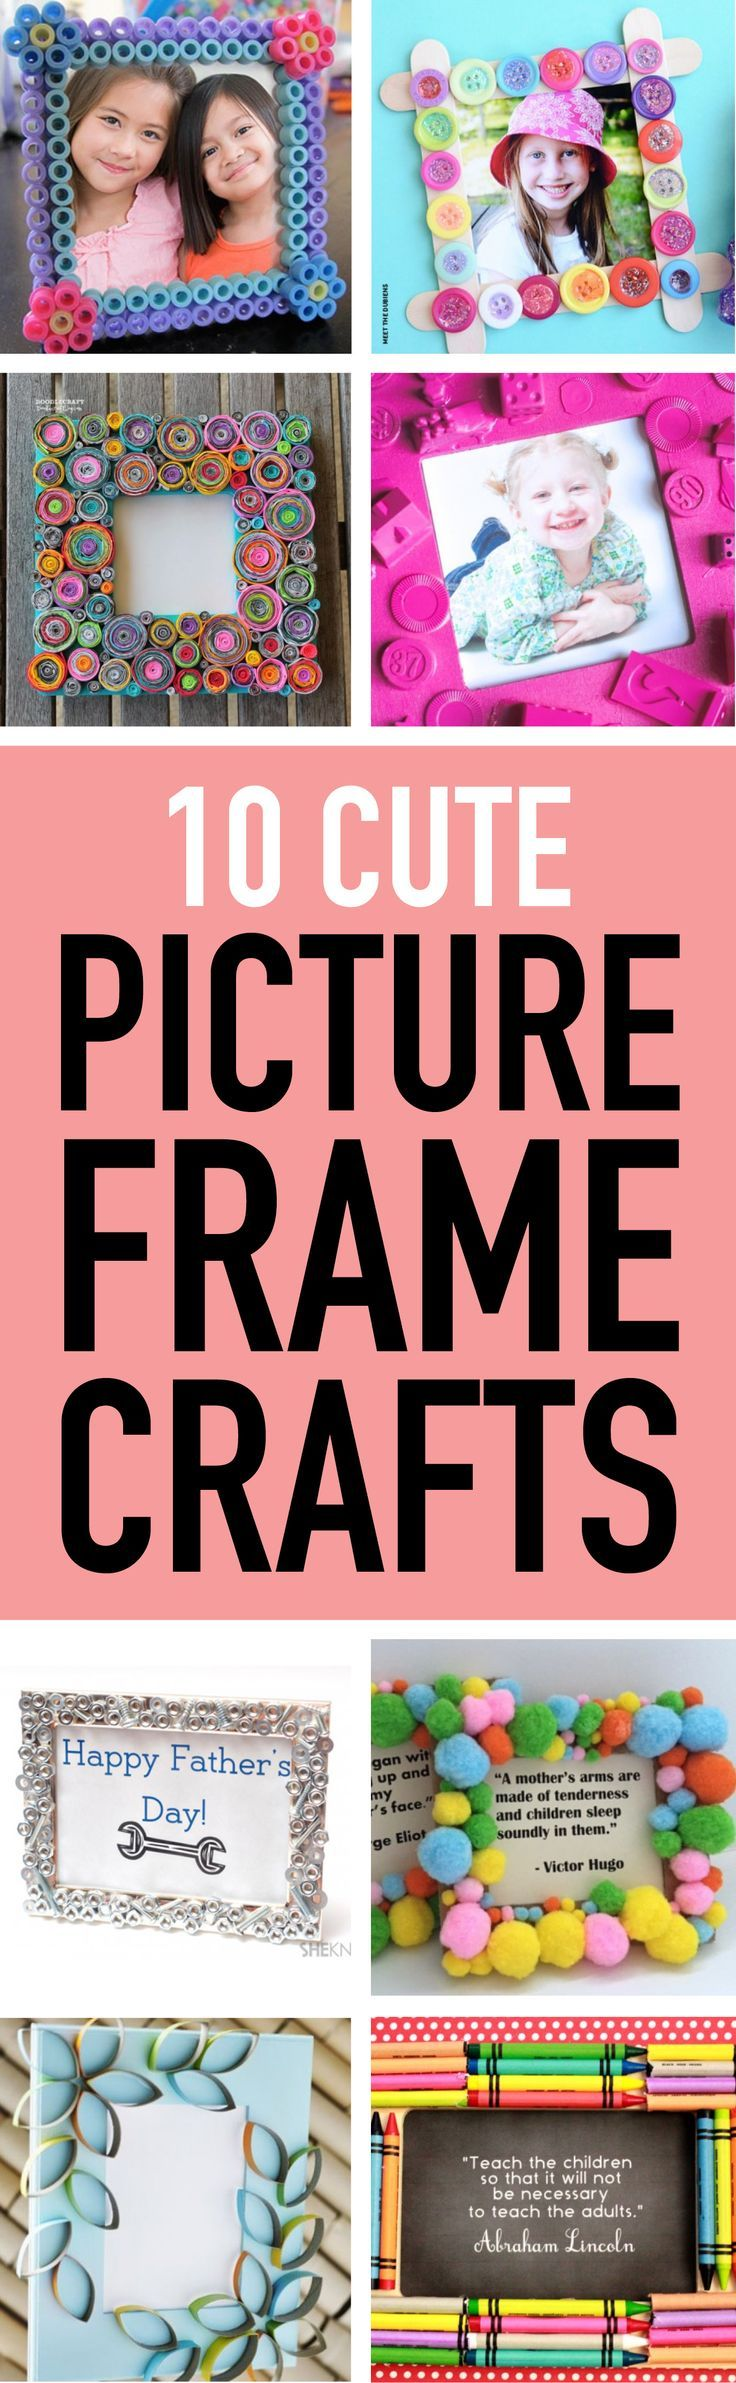 Looking for a way to entertain the kids? Make one of these fun picture frames! #kidscrafts #crafts #campcrafts: